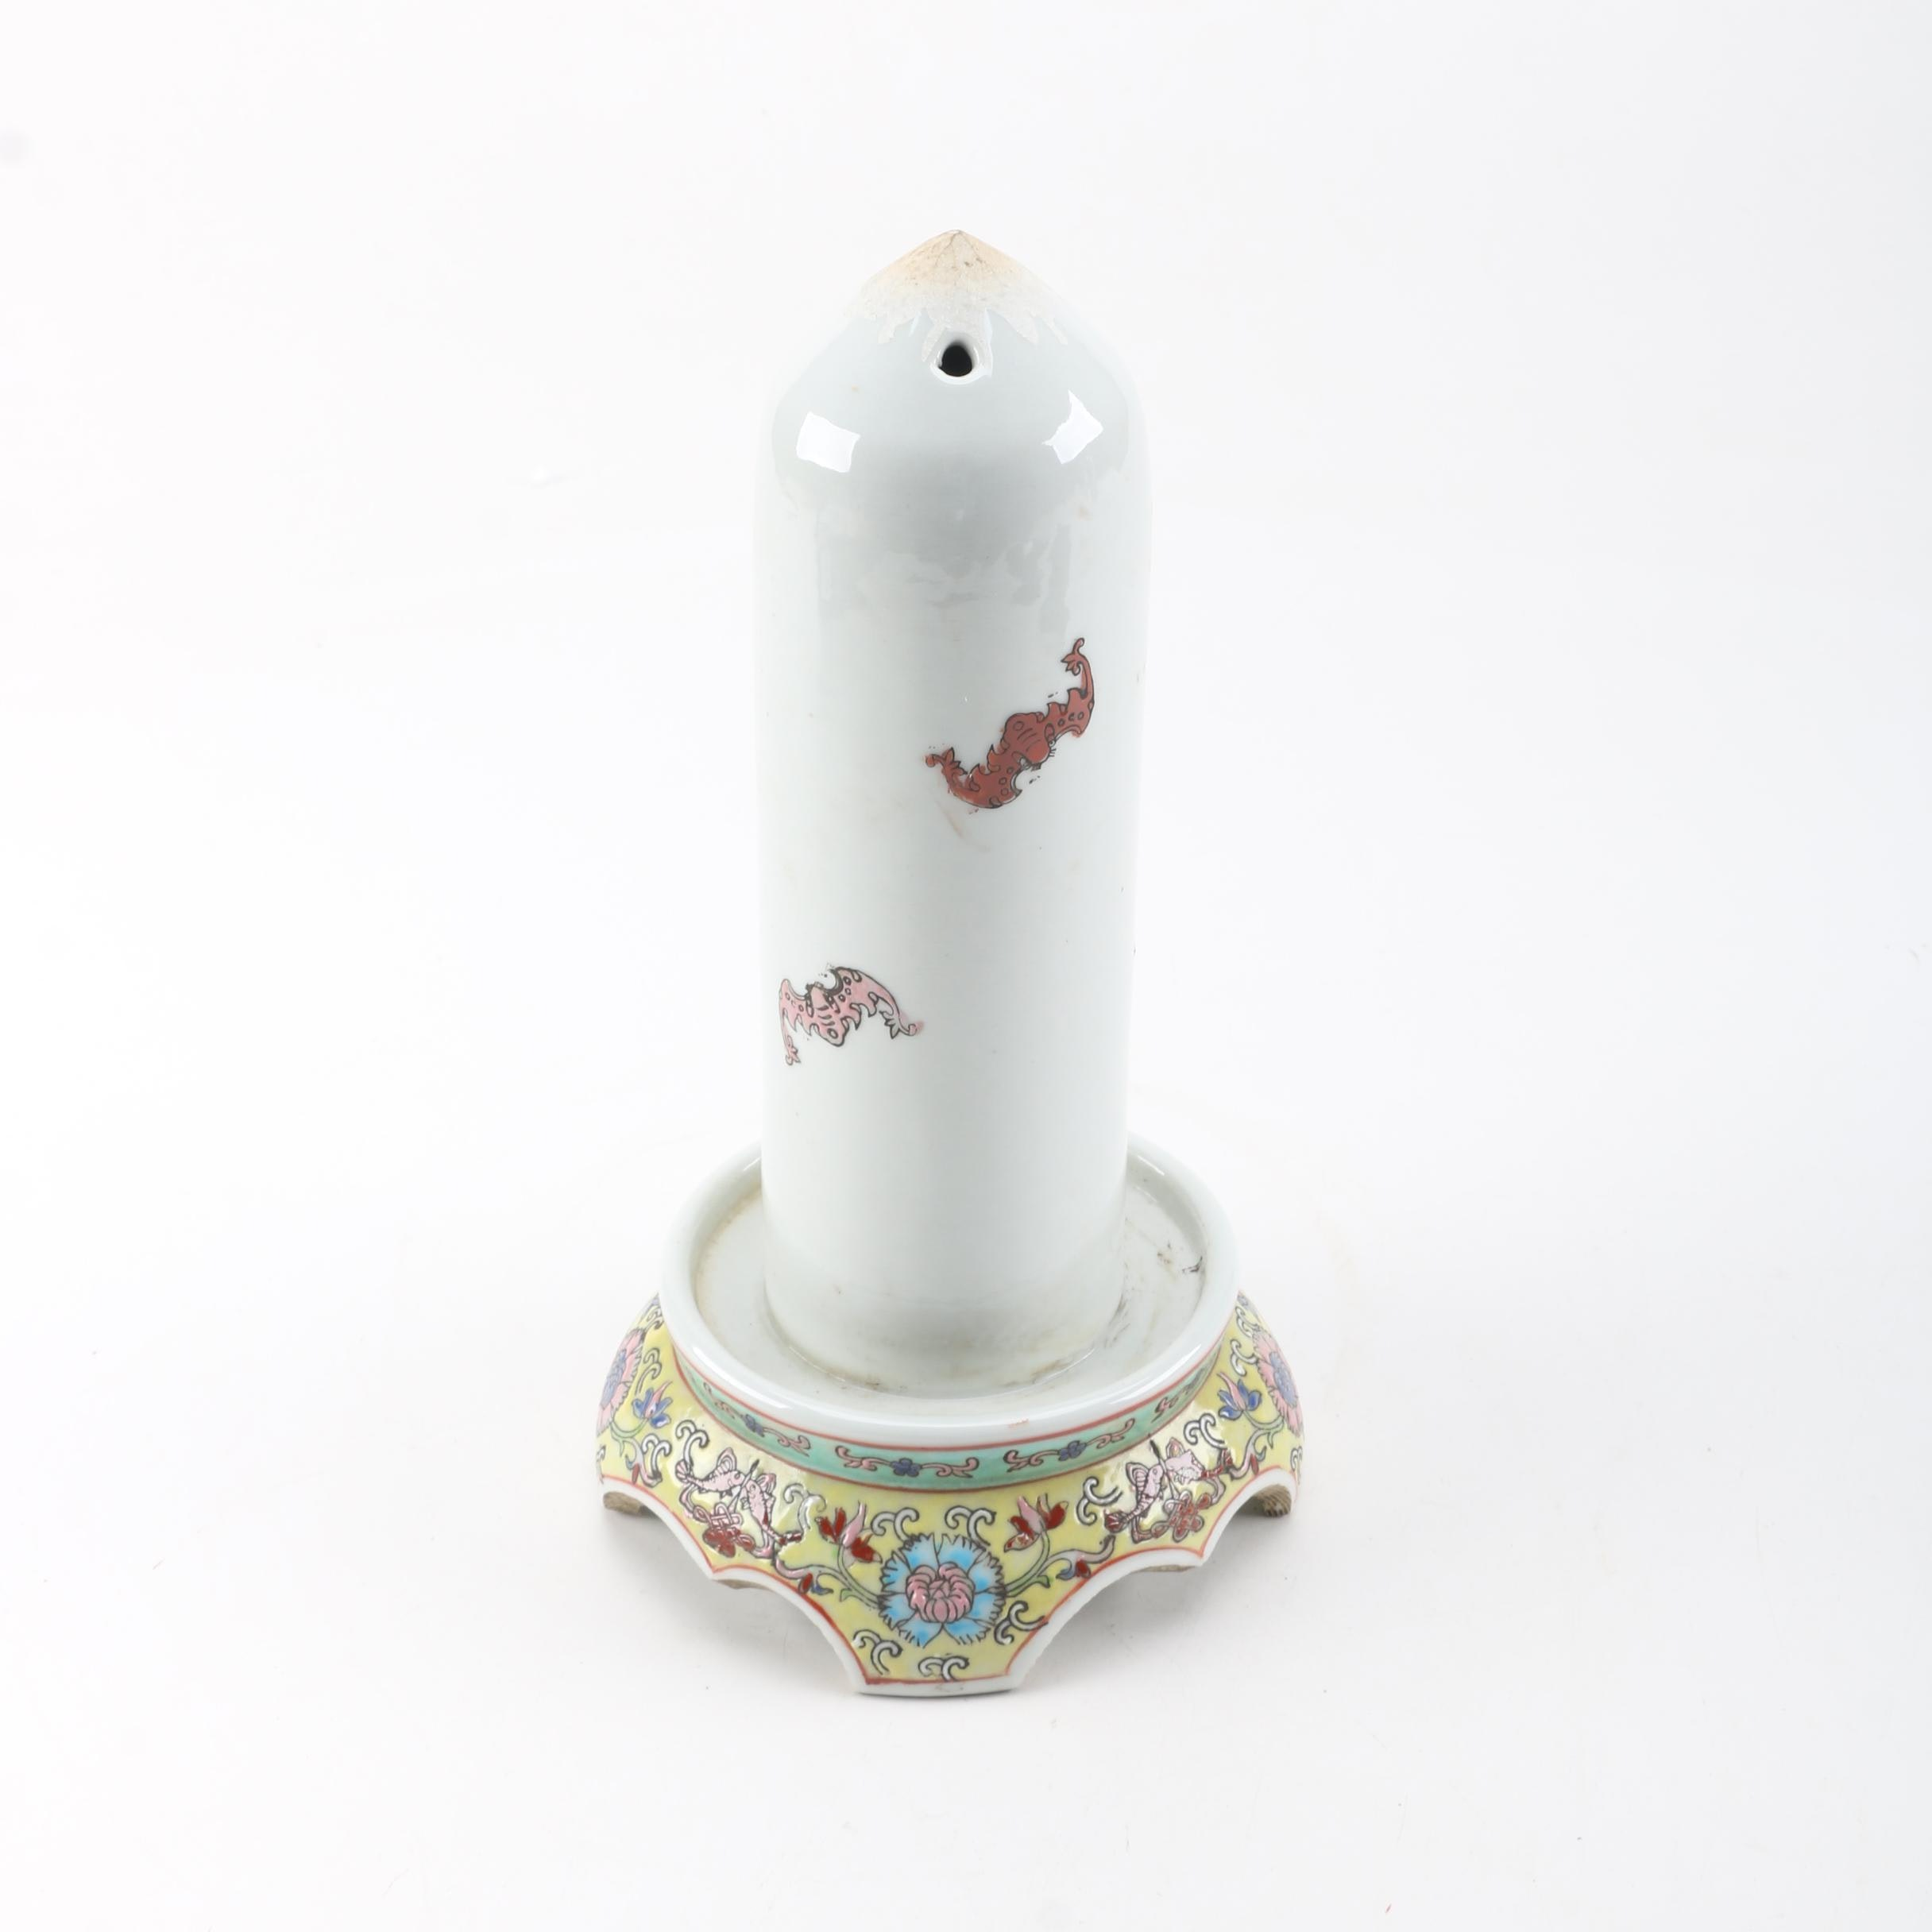 Chinese White Ceramic Oil Heater with Floral Motif Ceramic Base